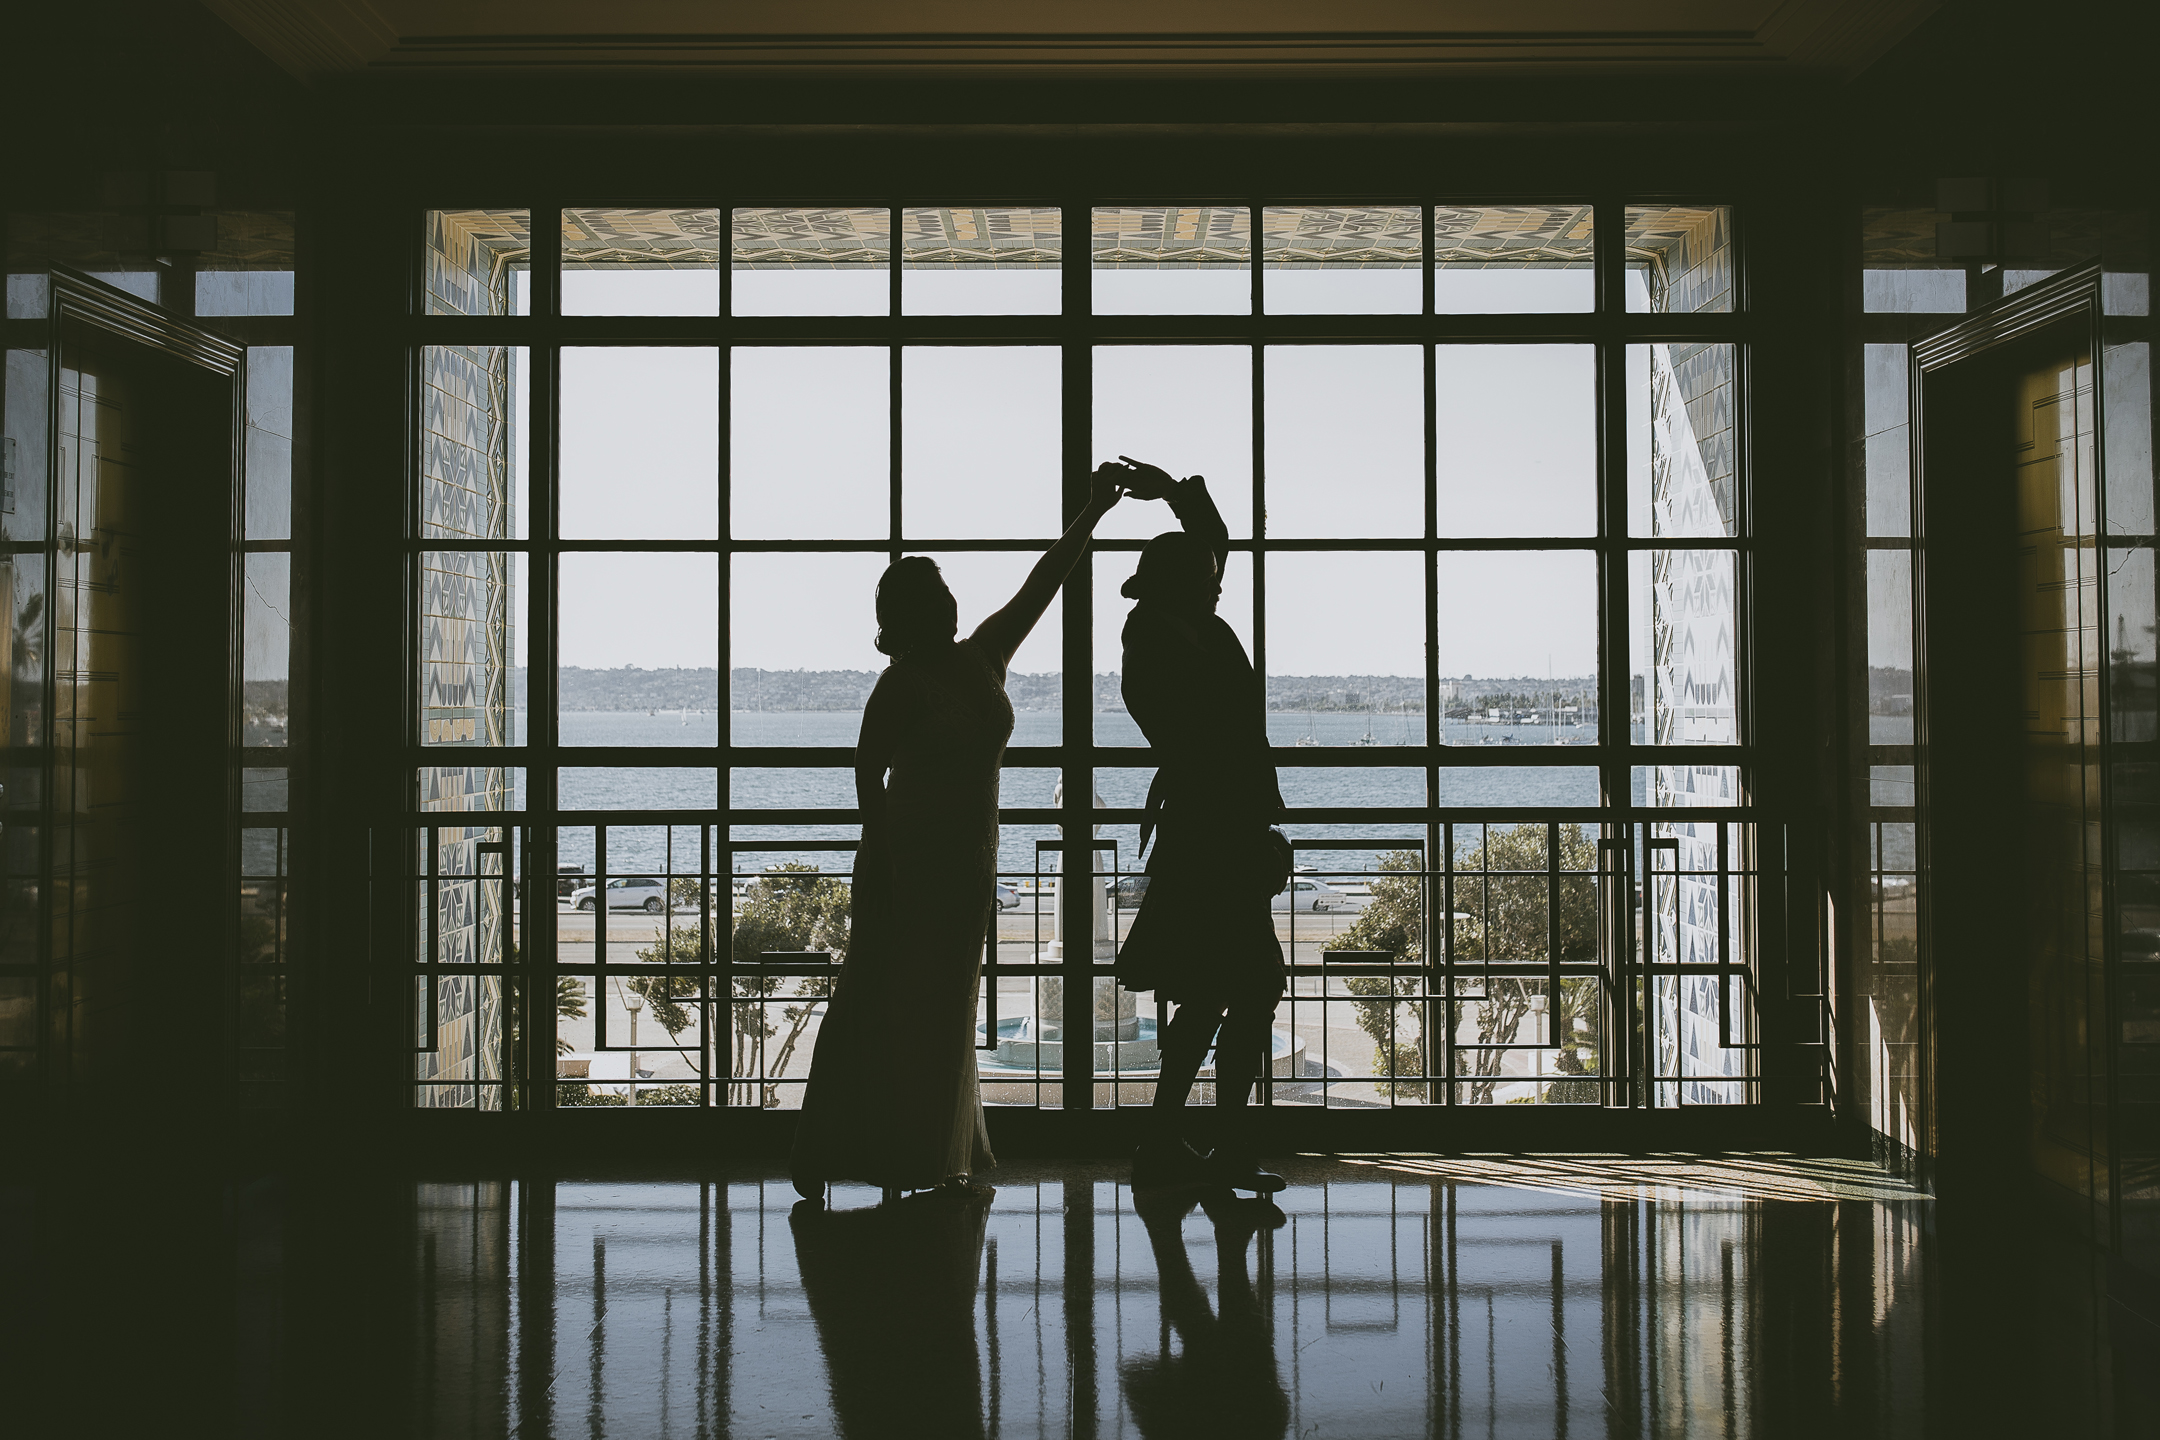 WEDDING photos: San Diego Courthouse + Star of India